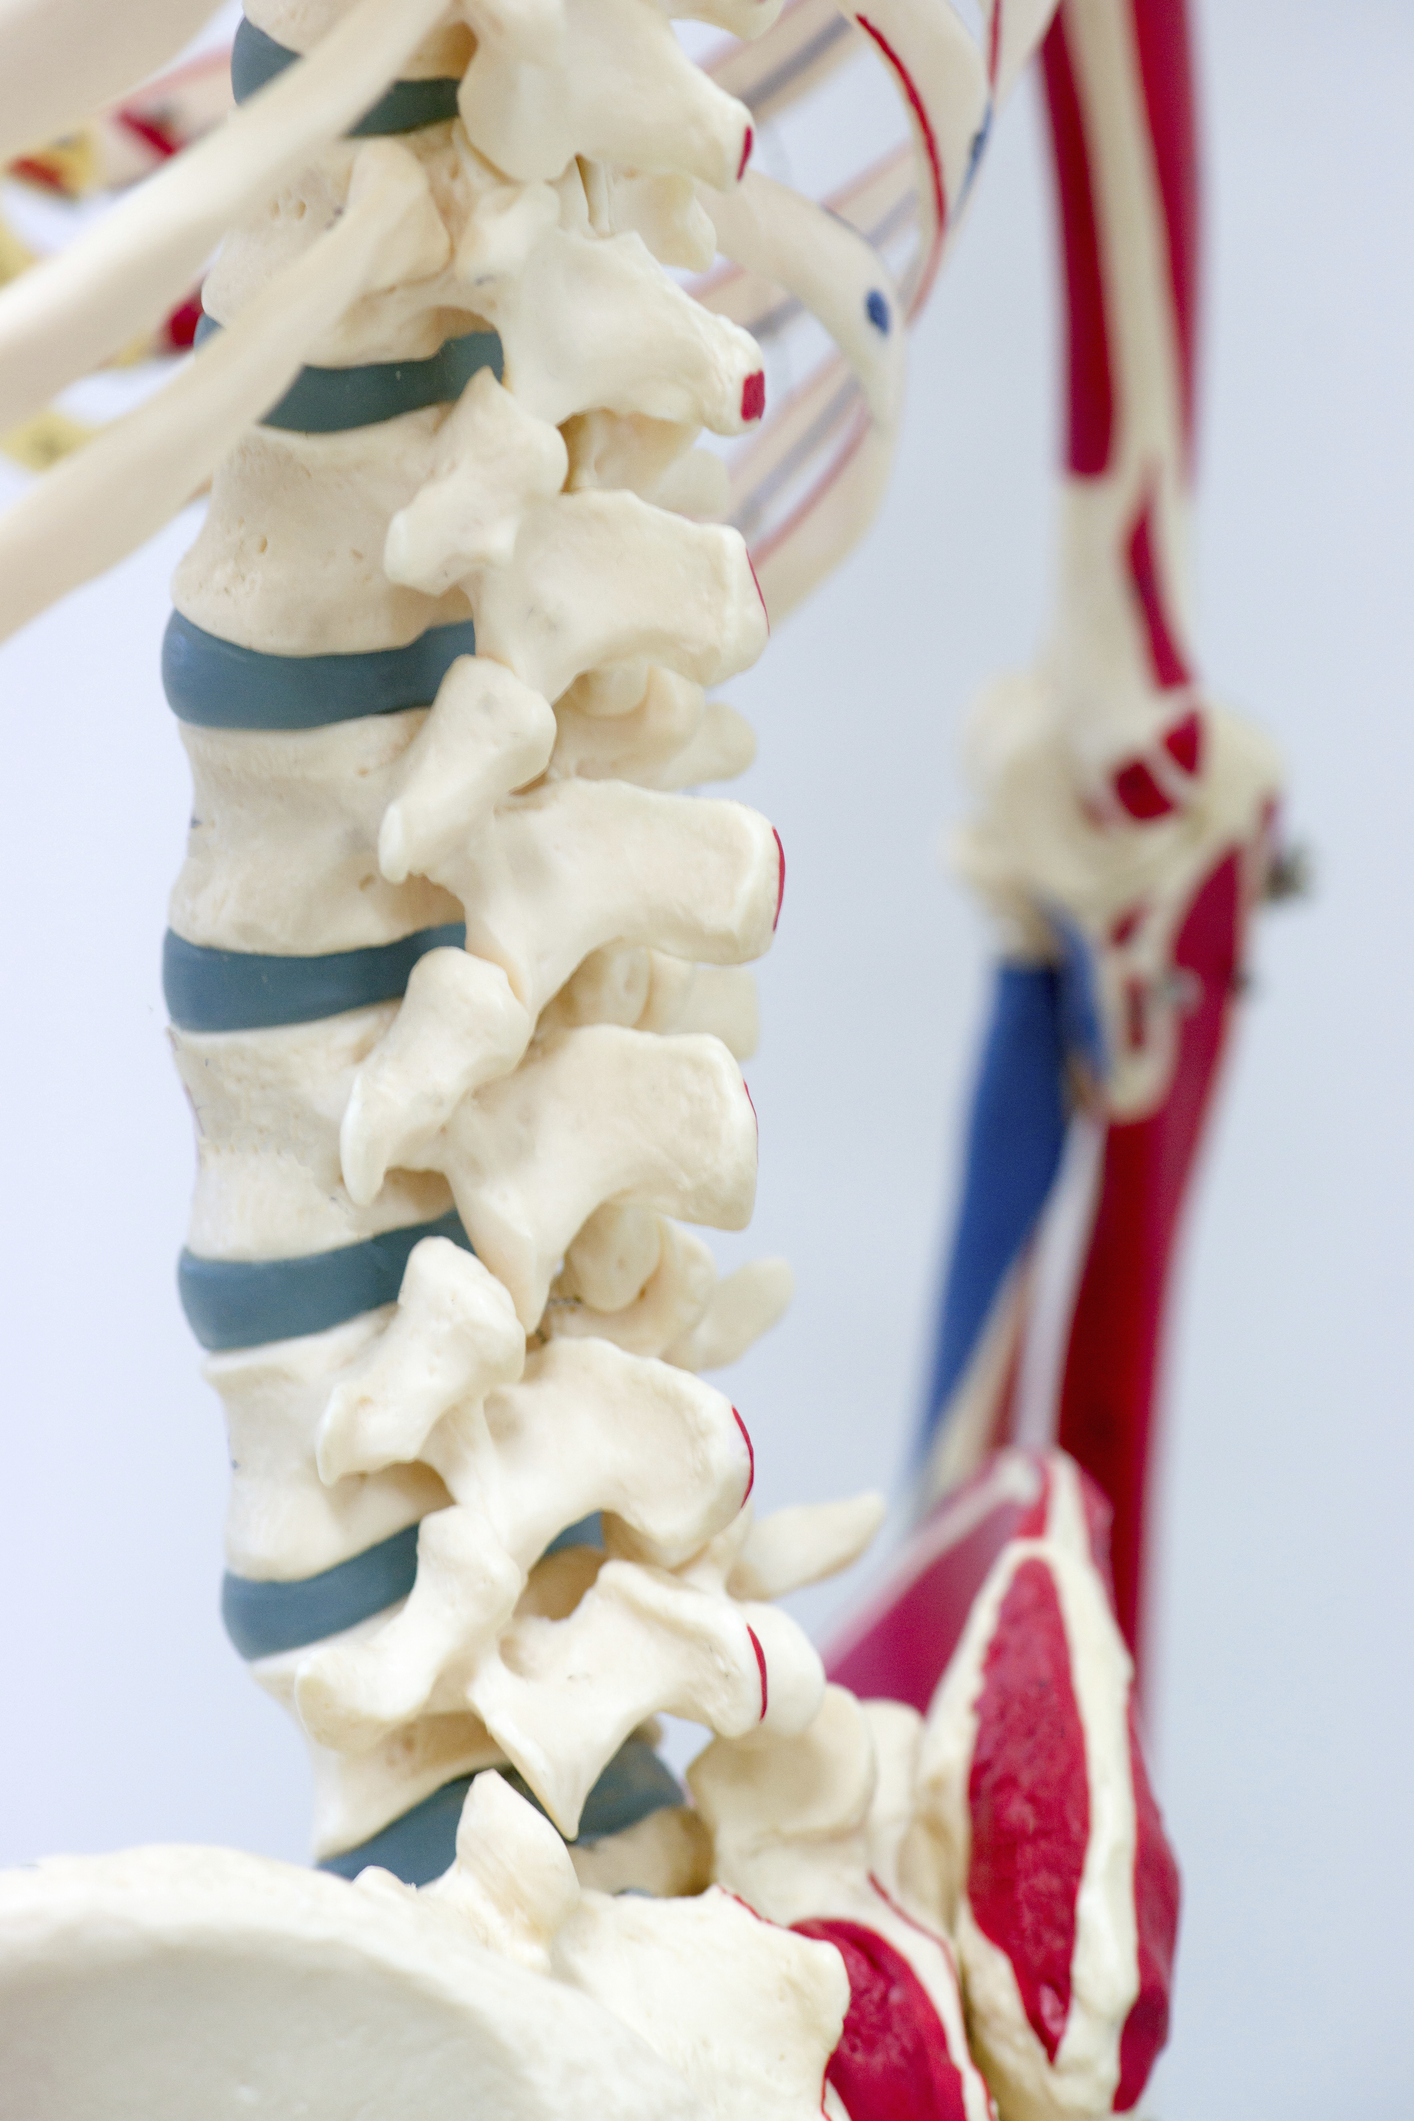 Human spine model shown to Grapevine TX patient